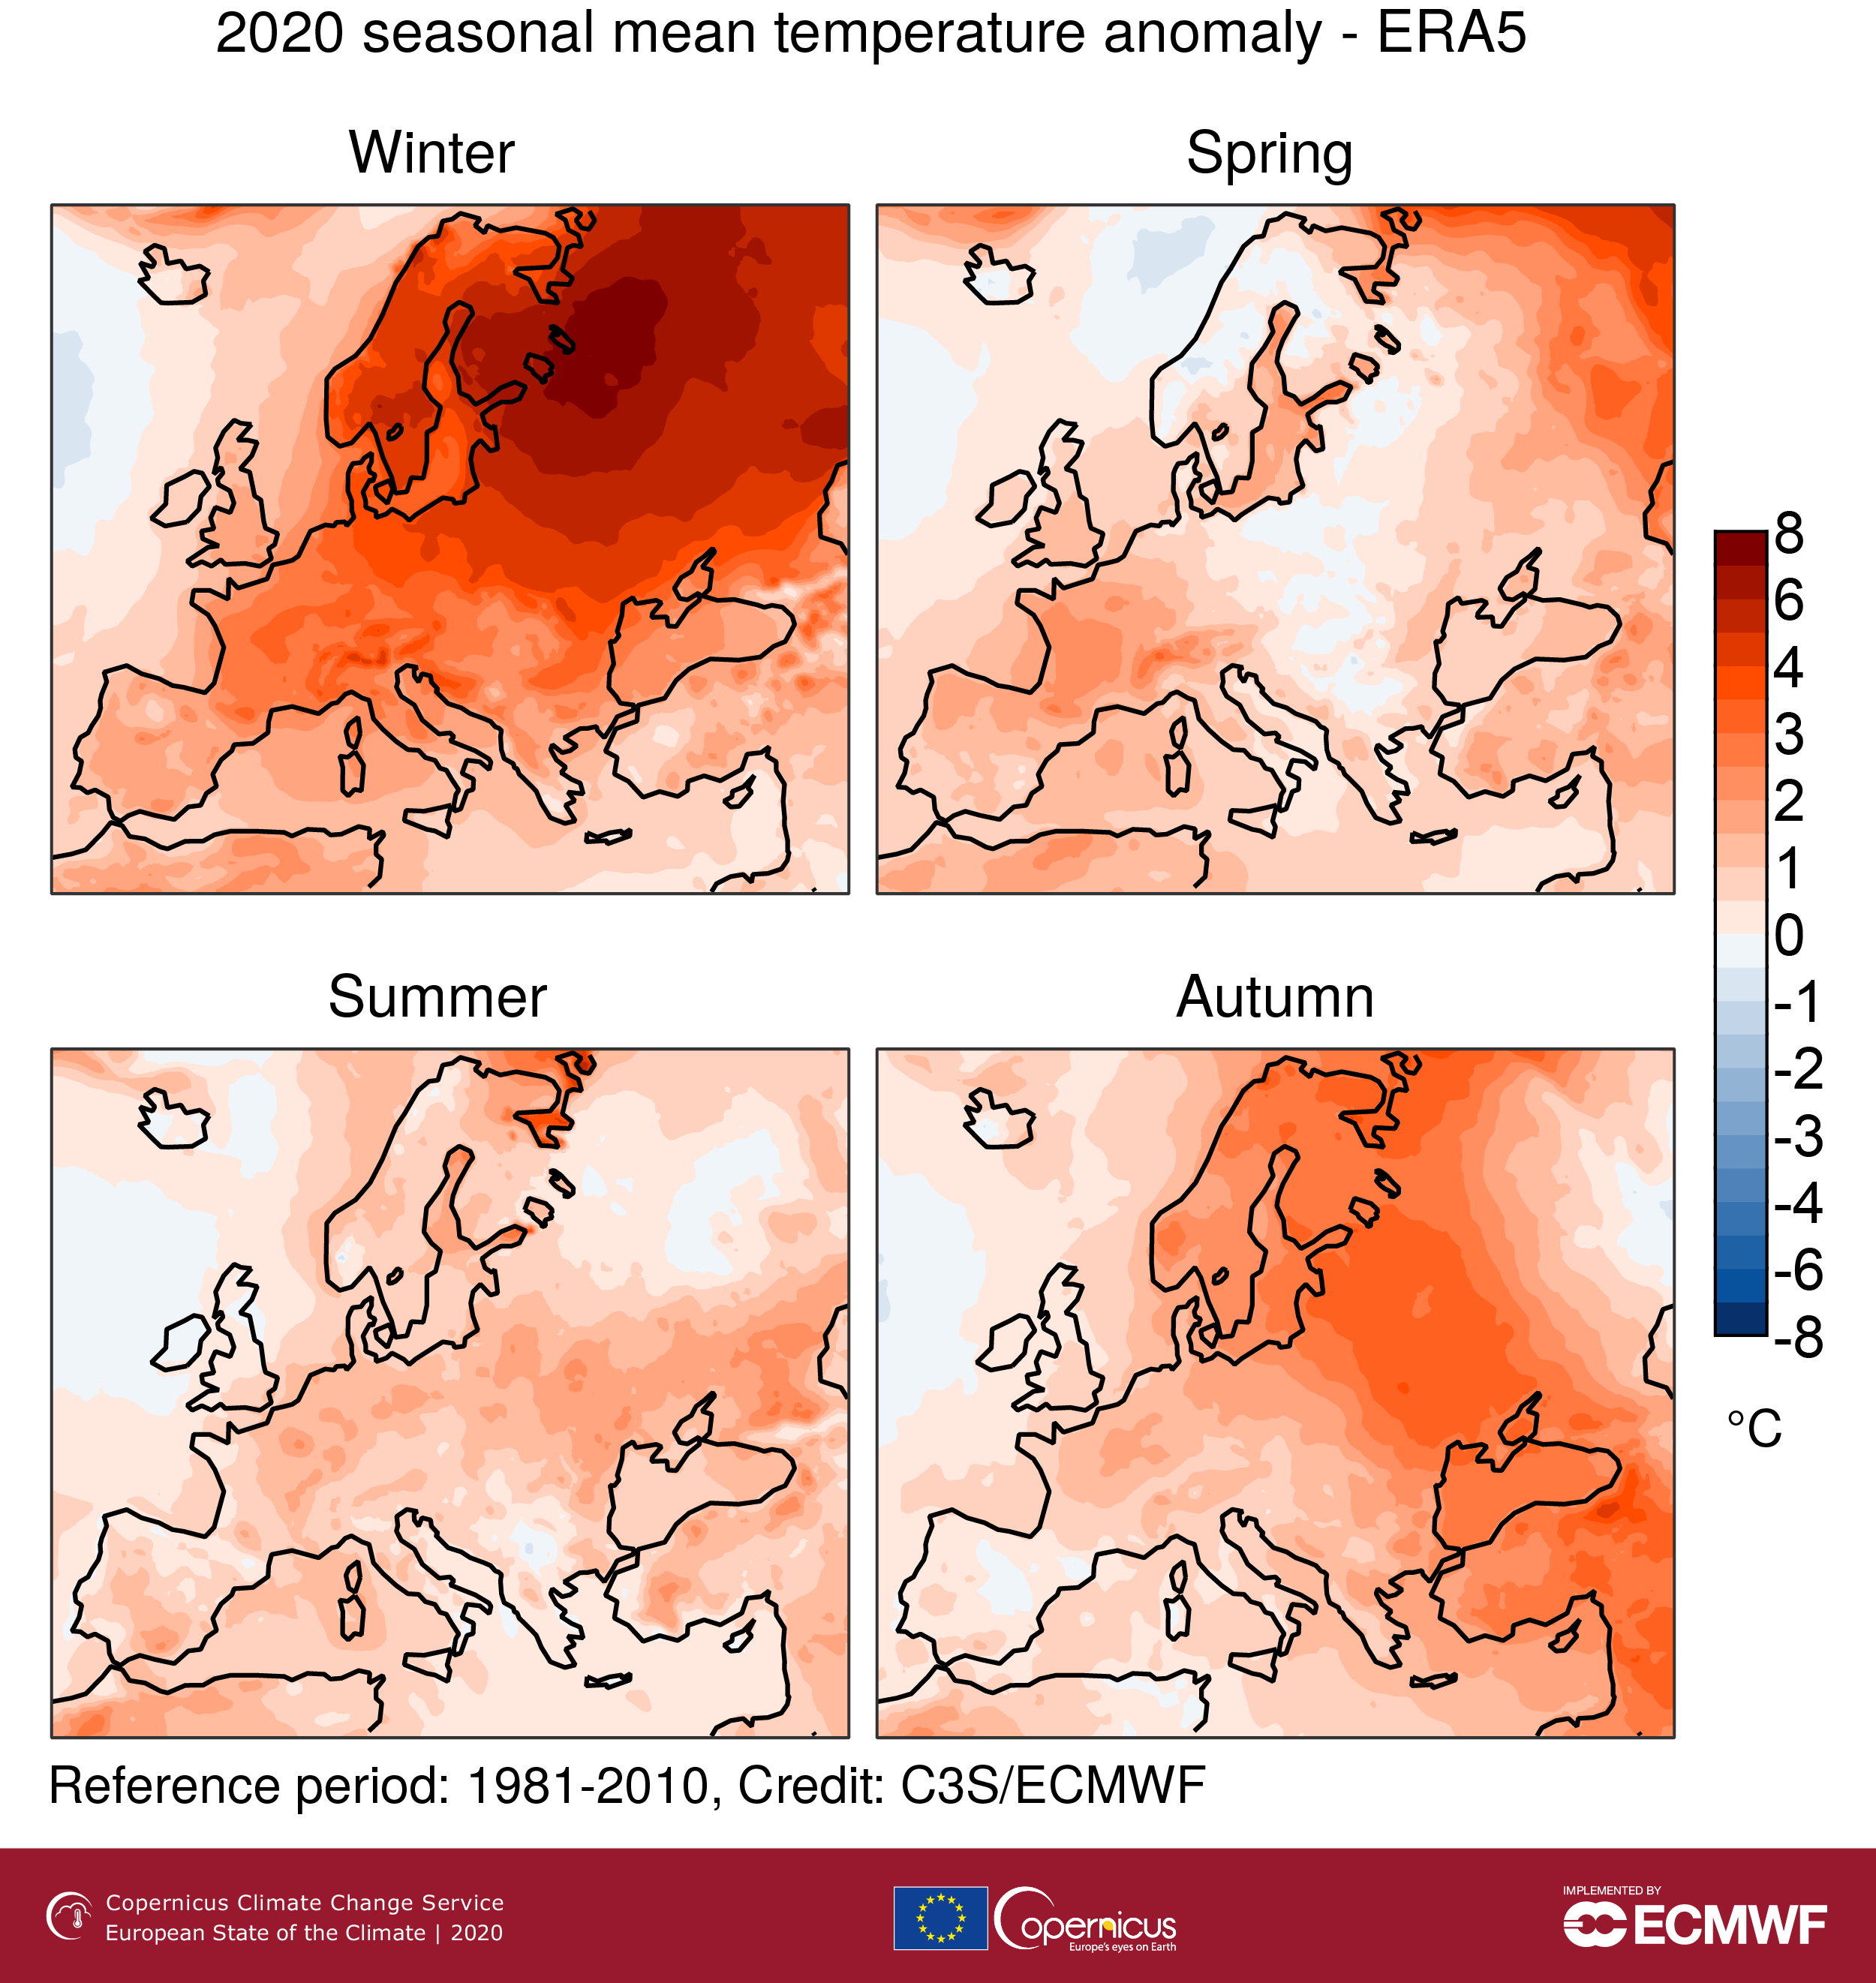 OBSERVER: Latest European State of the Climate reports record-high temperatures in 2020